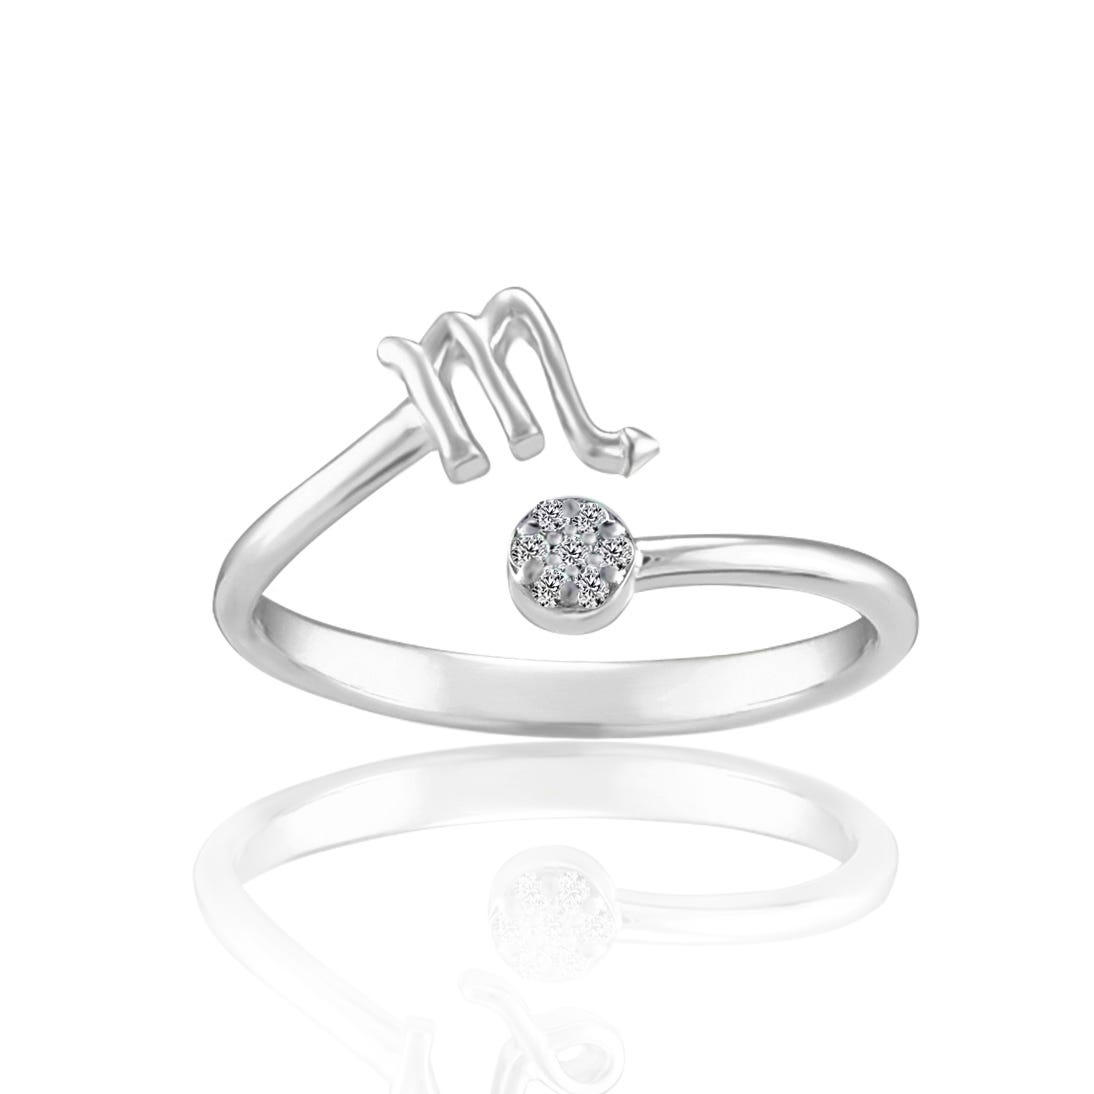 Zodiac Diamond Scorpio Fashion Ring in Sterling Silver